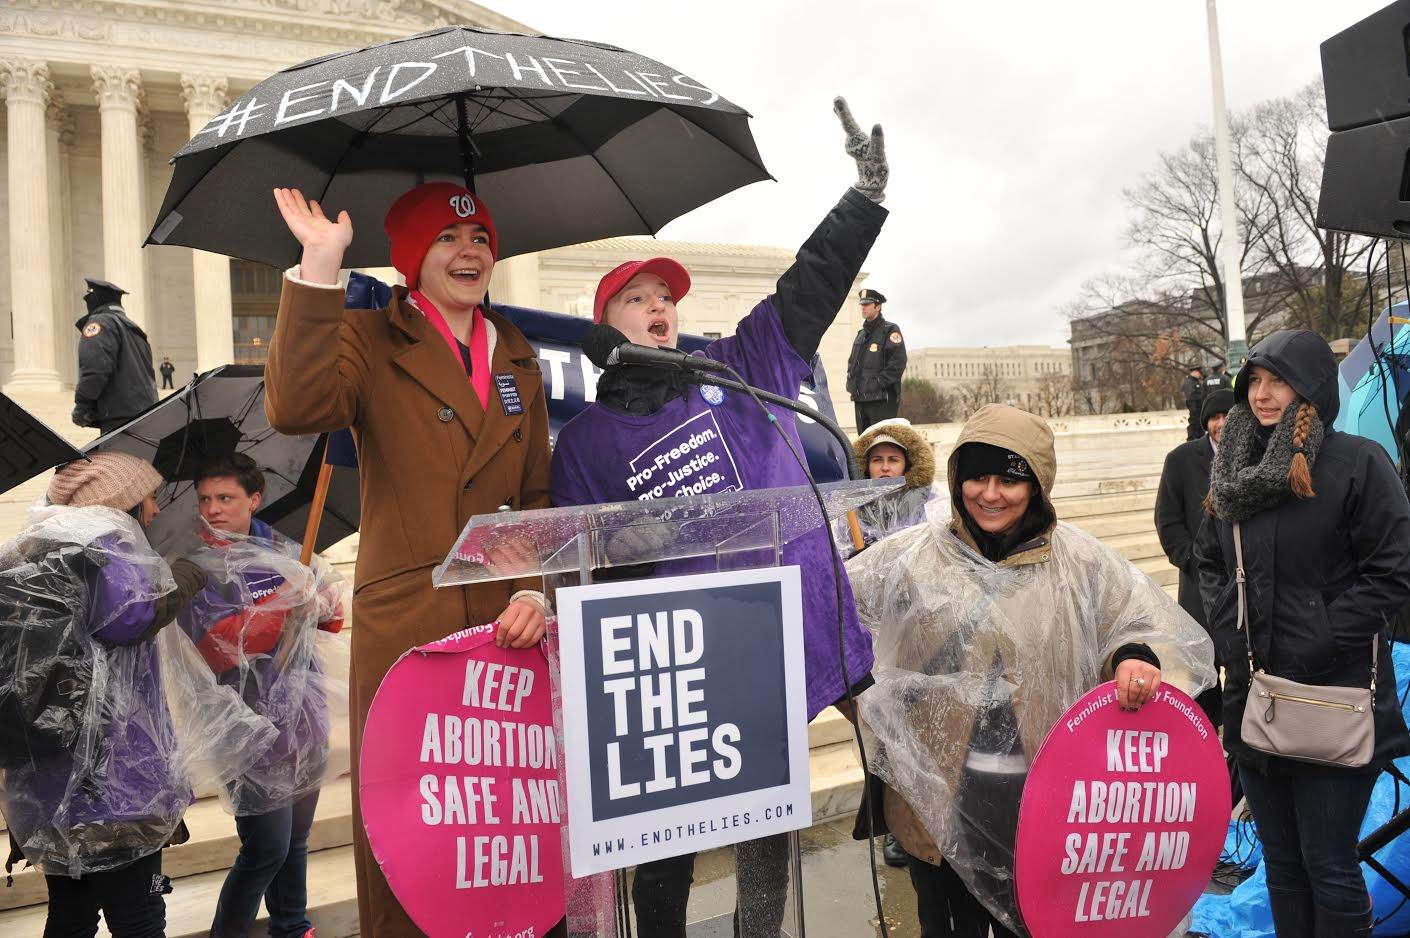 Carleton students Maggie and Carolyn shared their success story on the steps of the Supreme Court in March at the Rally to #EndTheLies